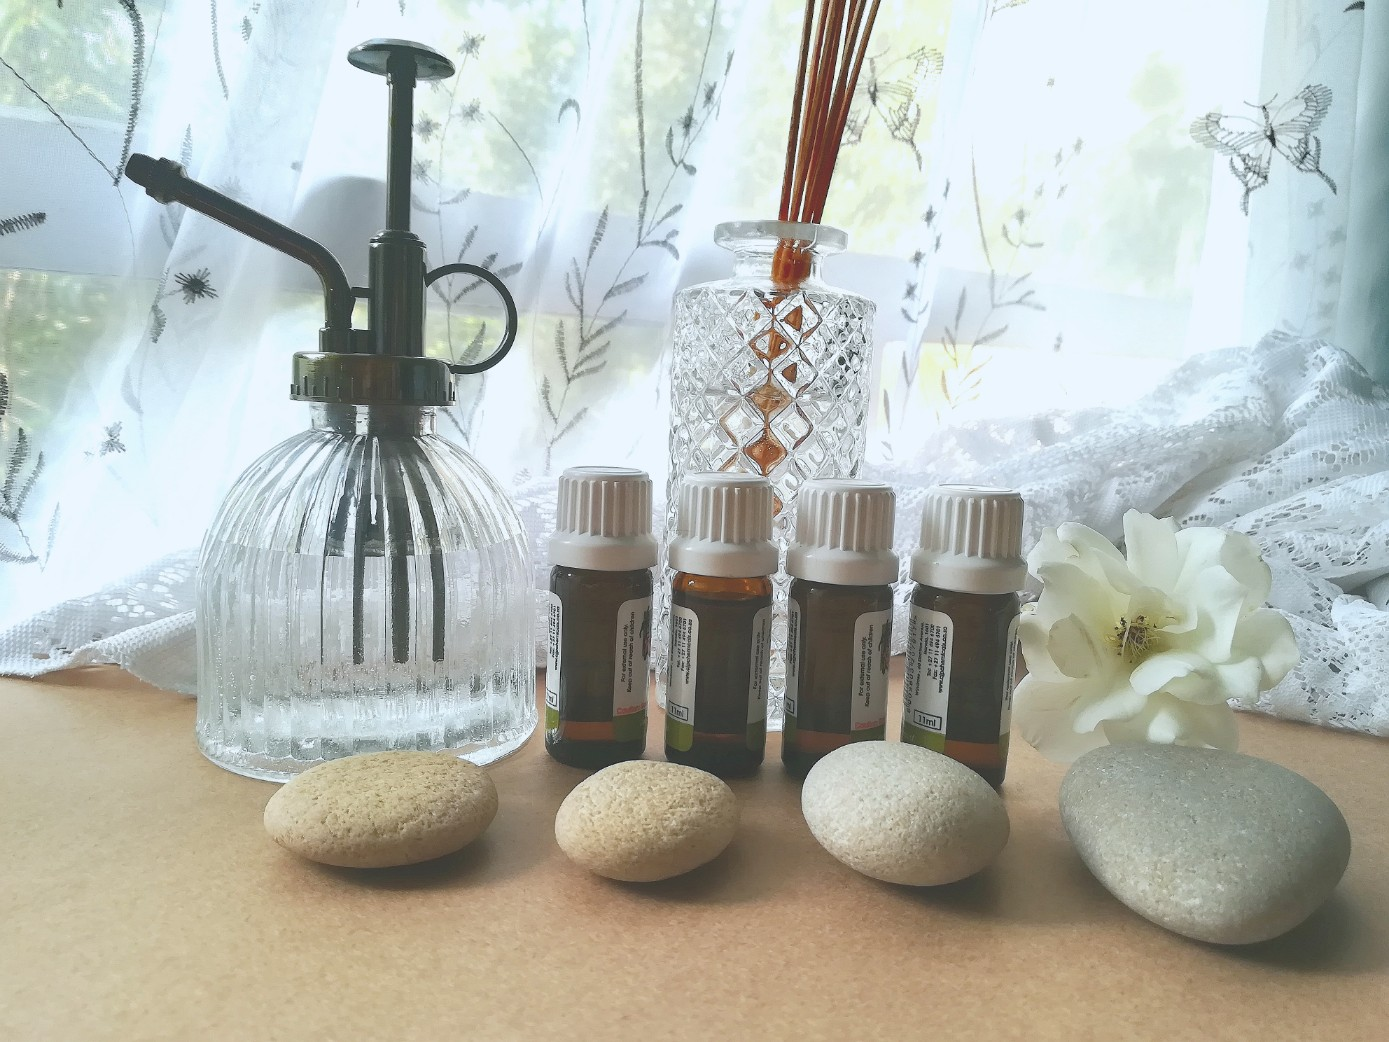 Essential oils and diffuser with meditative stones and sticks